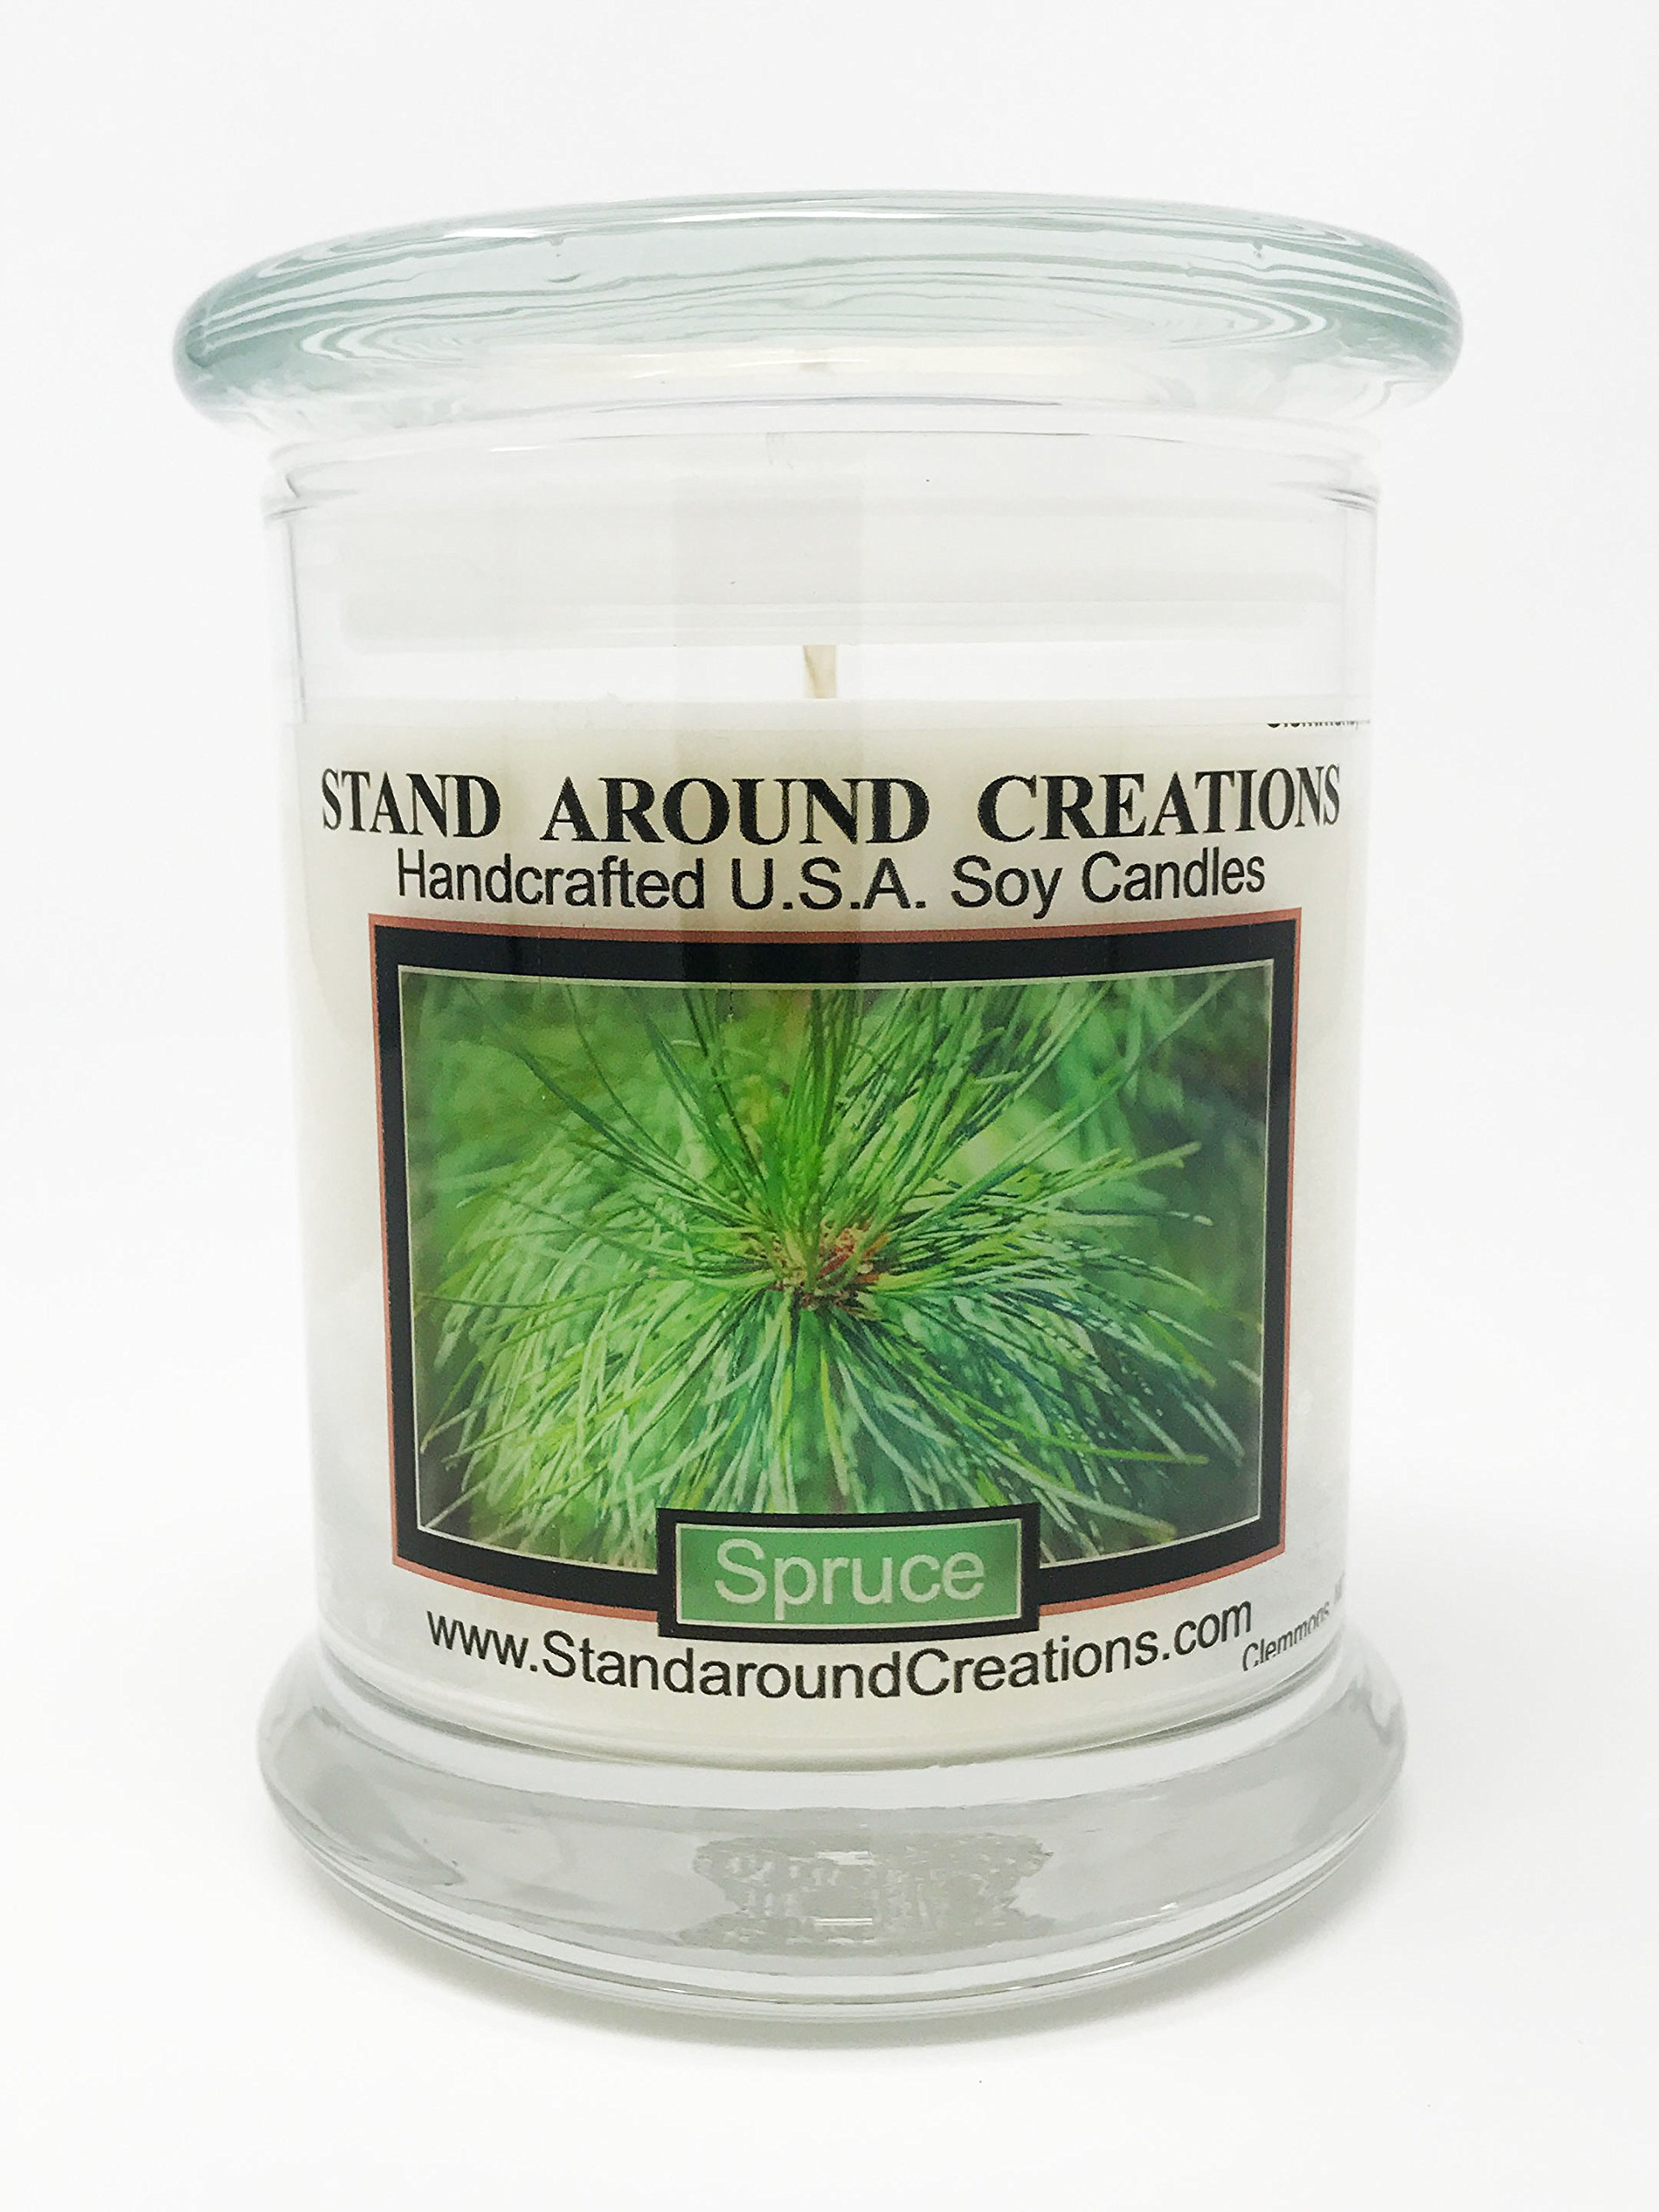 Premium 100% Soy Candle - 12 oz. Status Jar - Spruce: More complex than a typical Frasier or Douglas Fir. Capture the spirit of the holidays. Made w/natural essential oils.